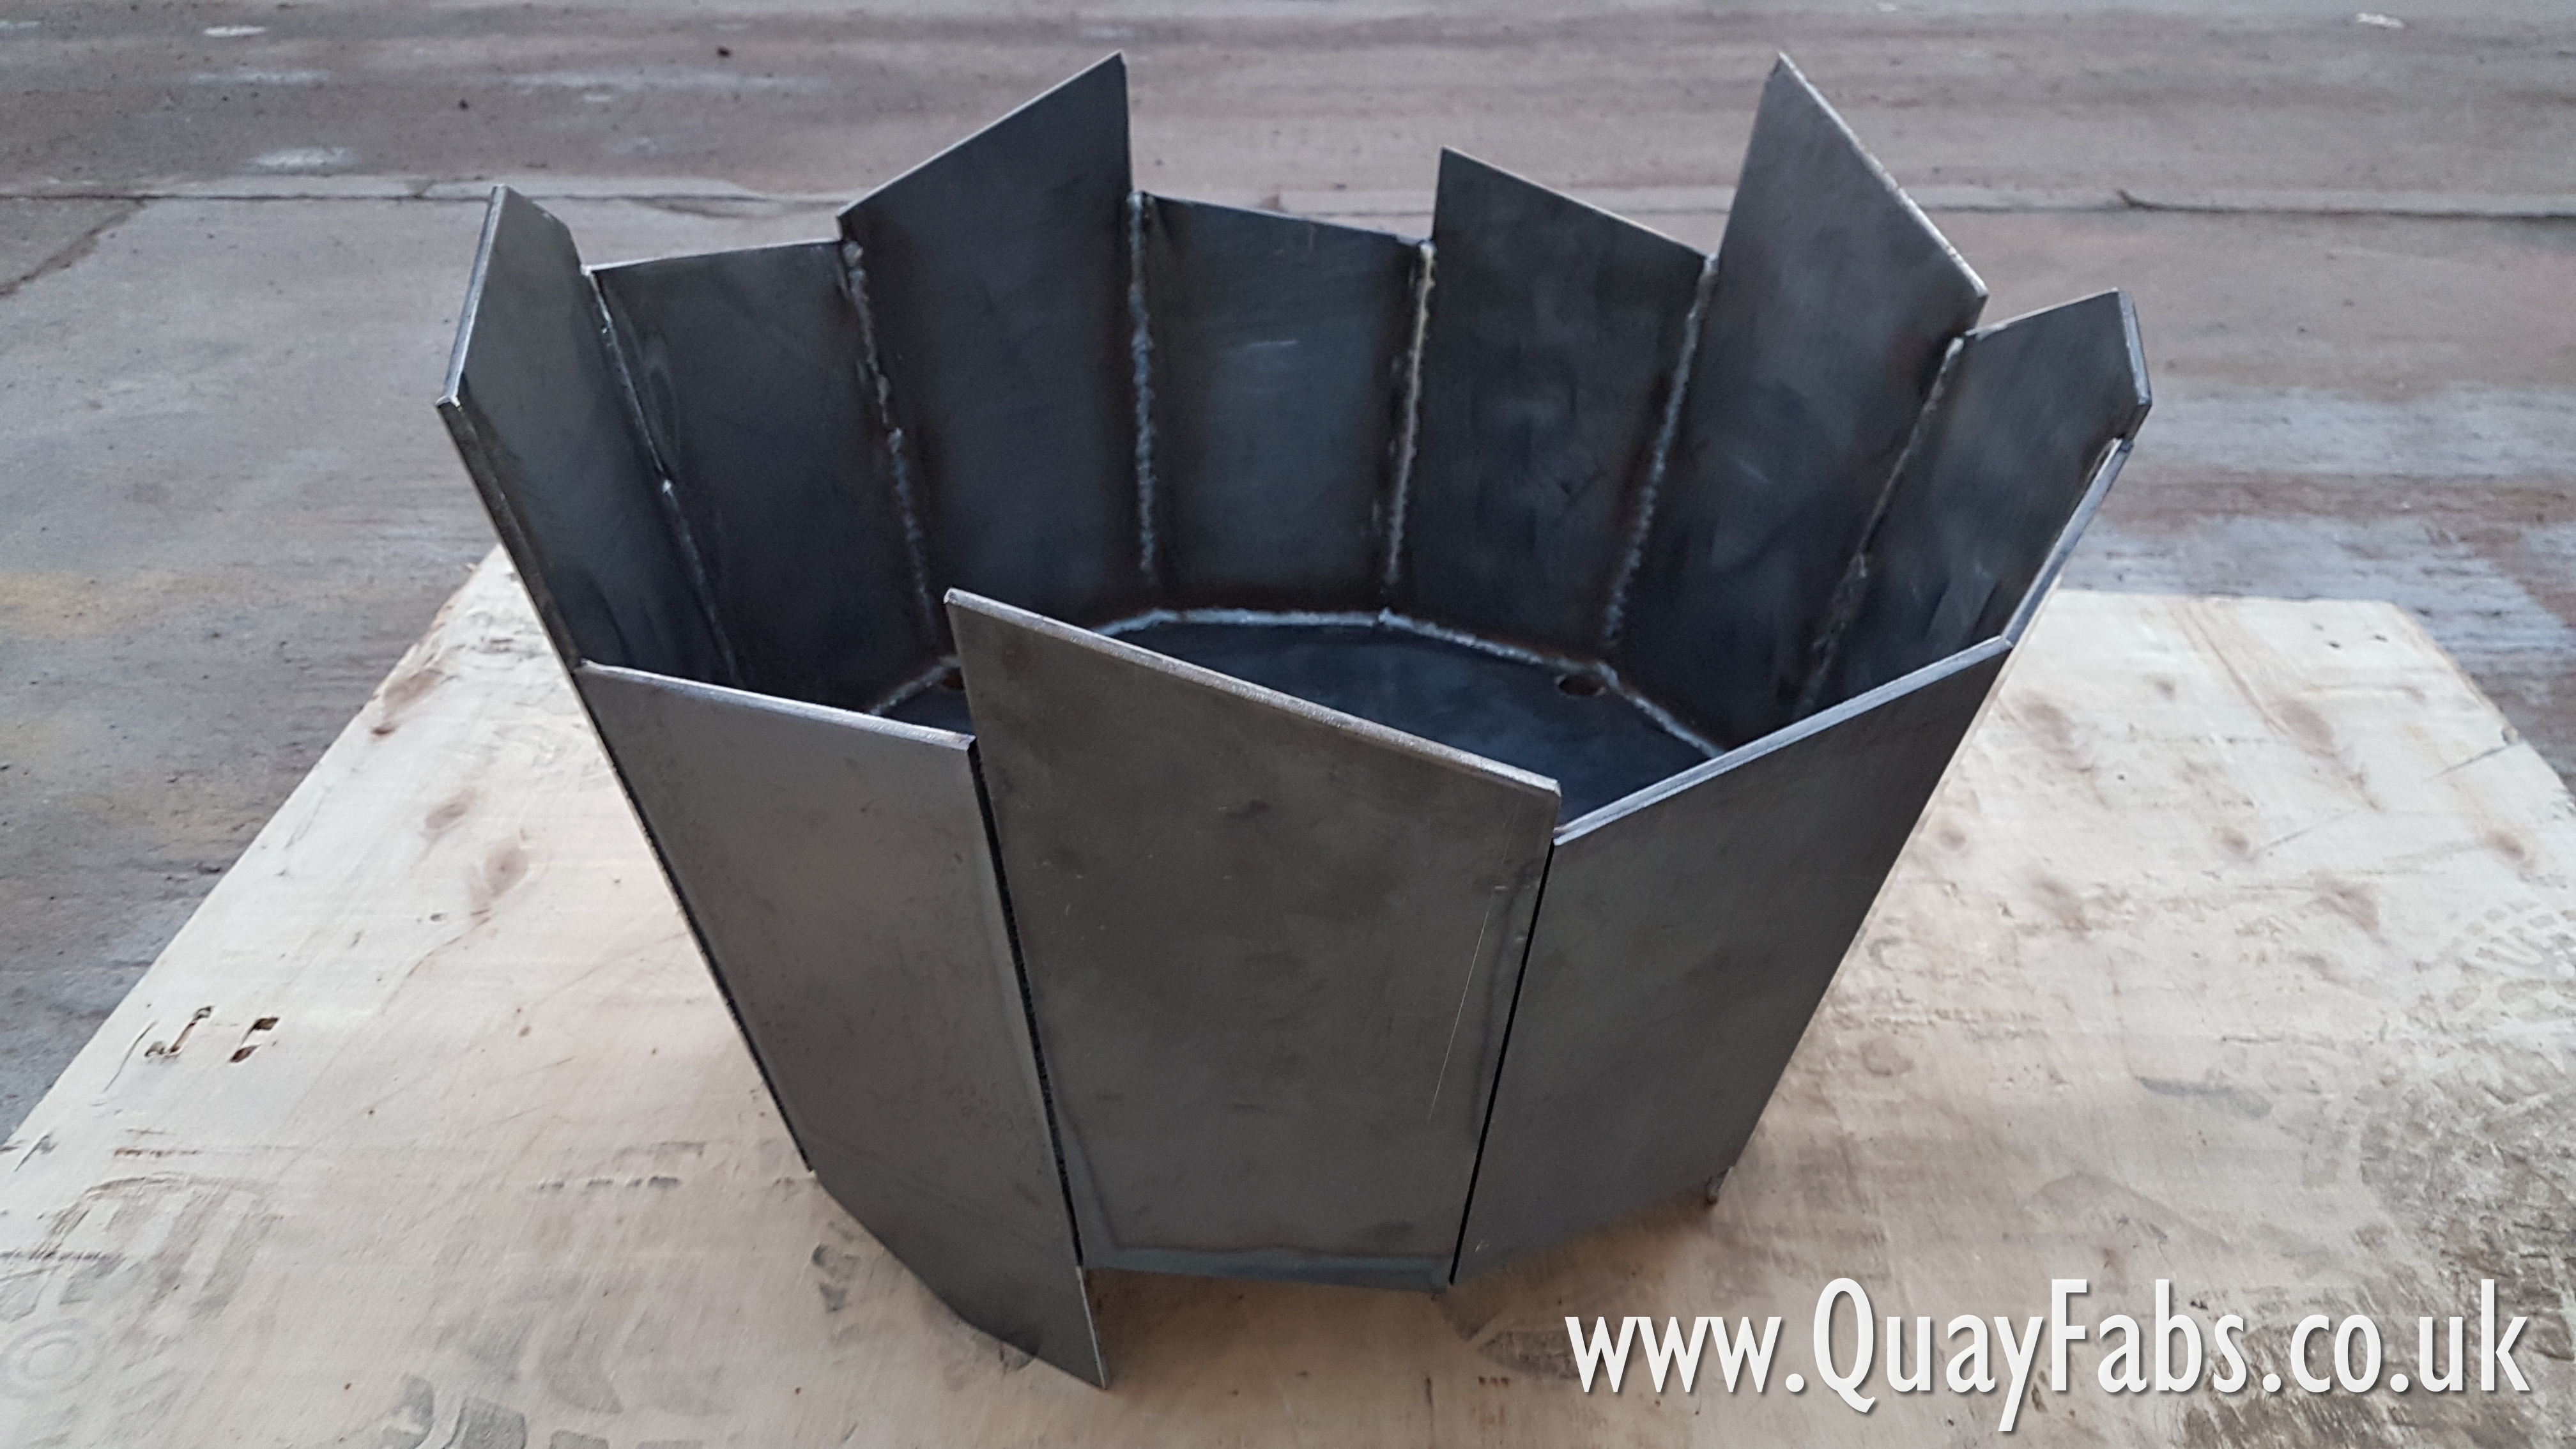 Quay Fabrications Lancaster Ltd Firepits (2)